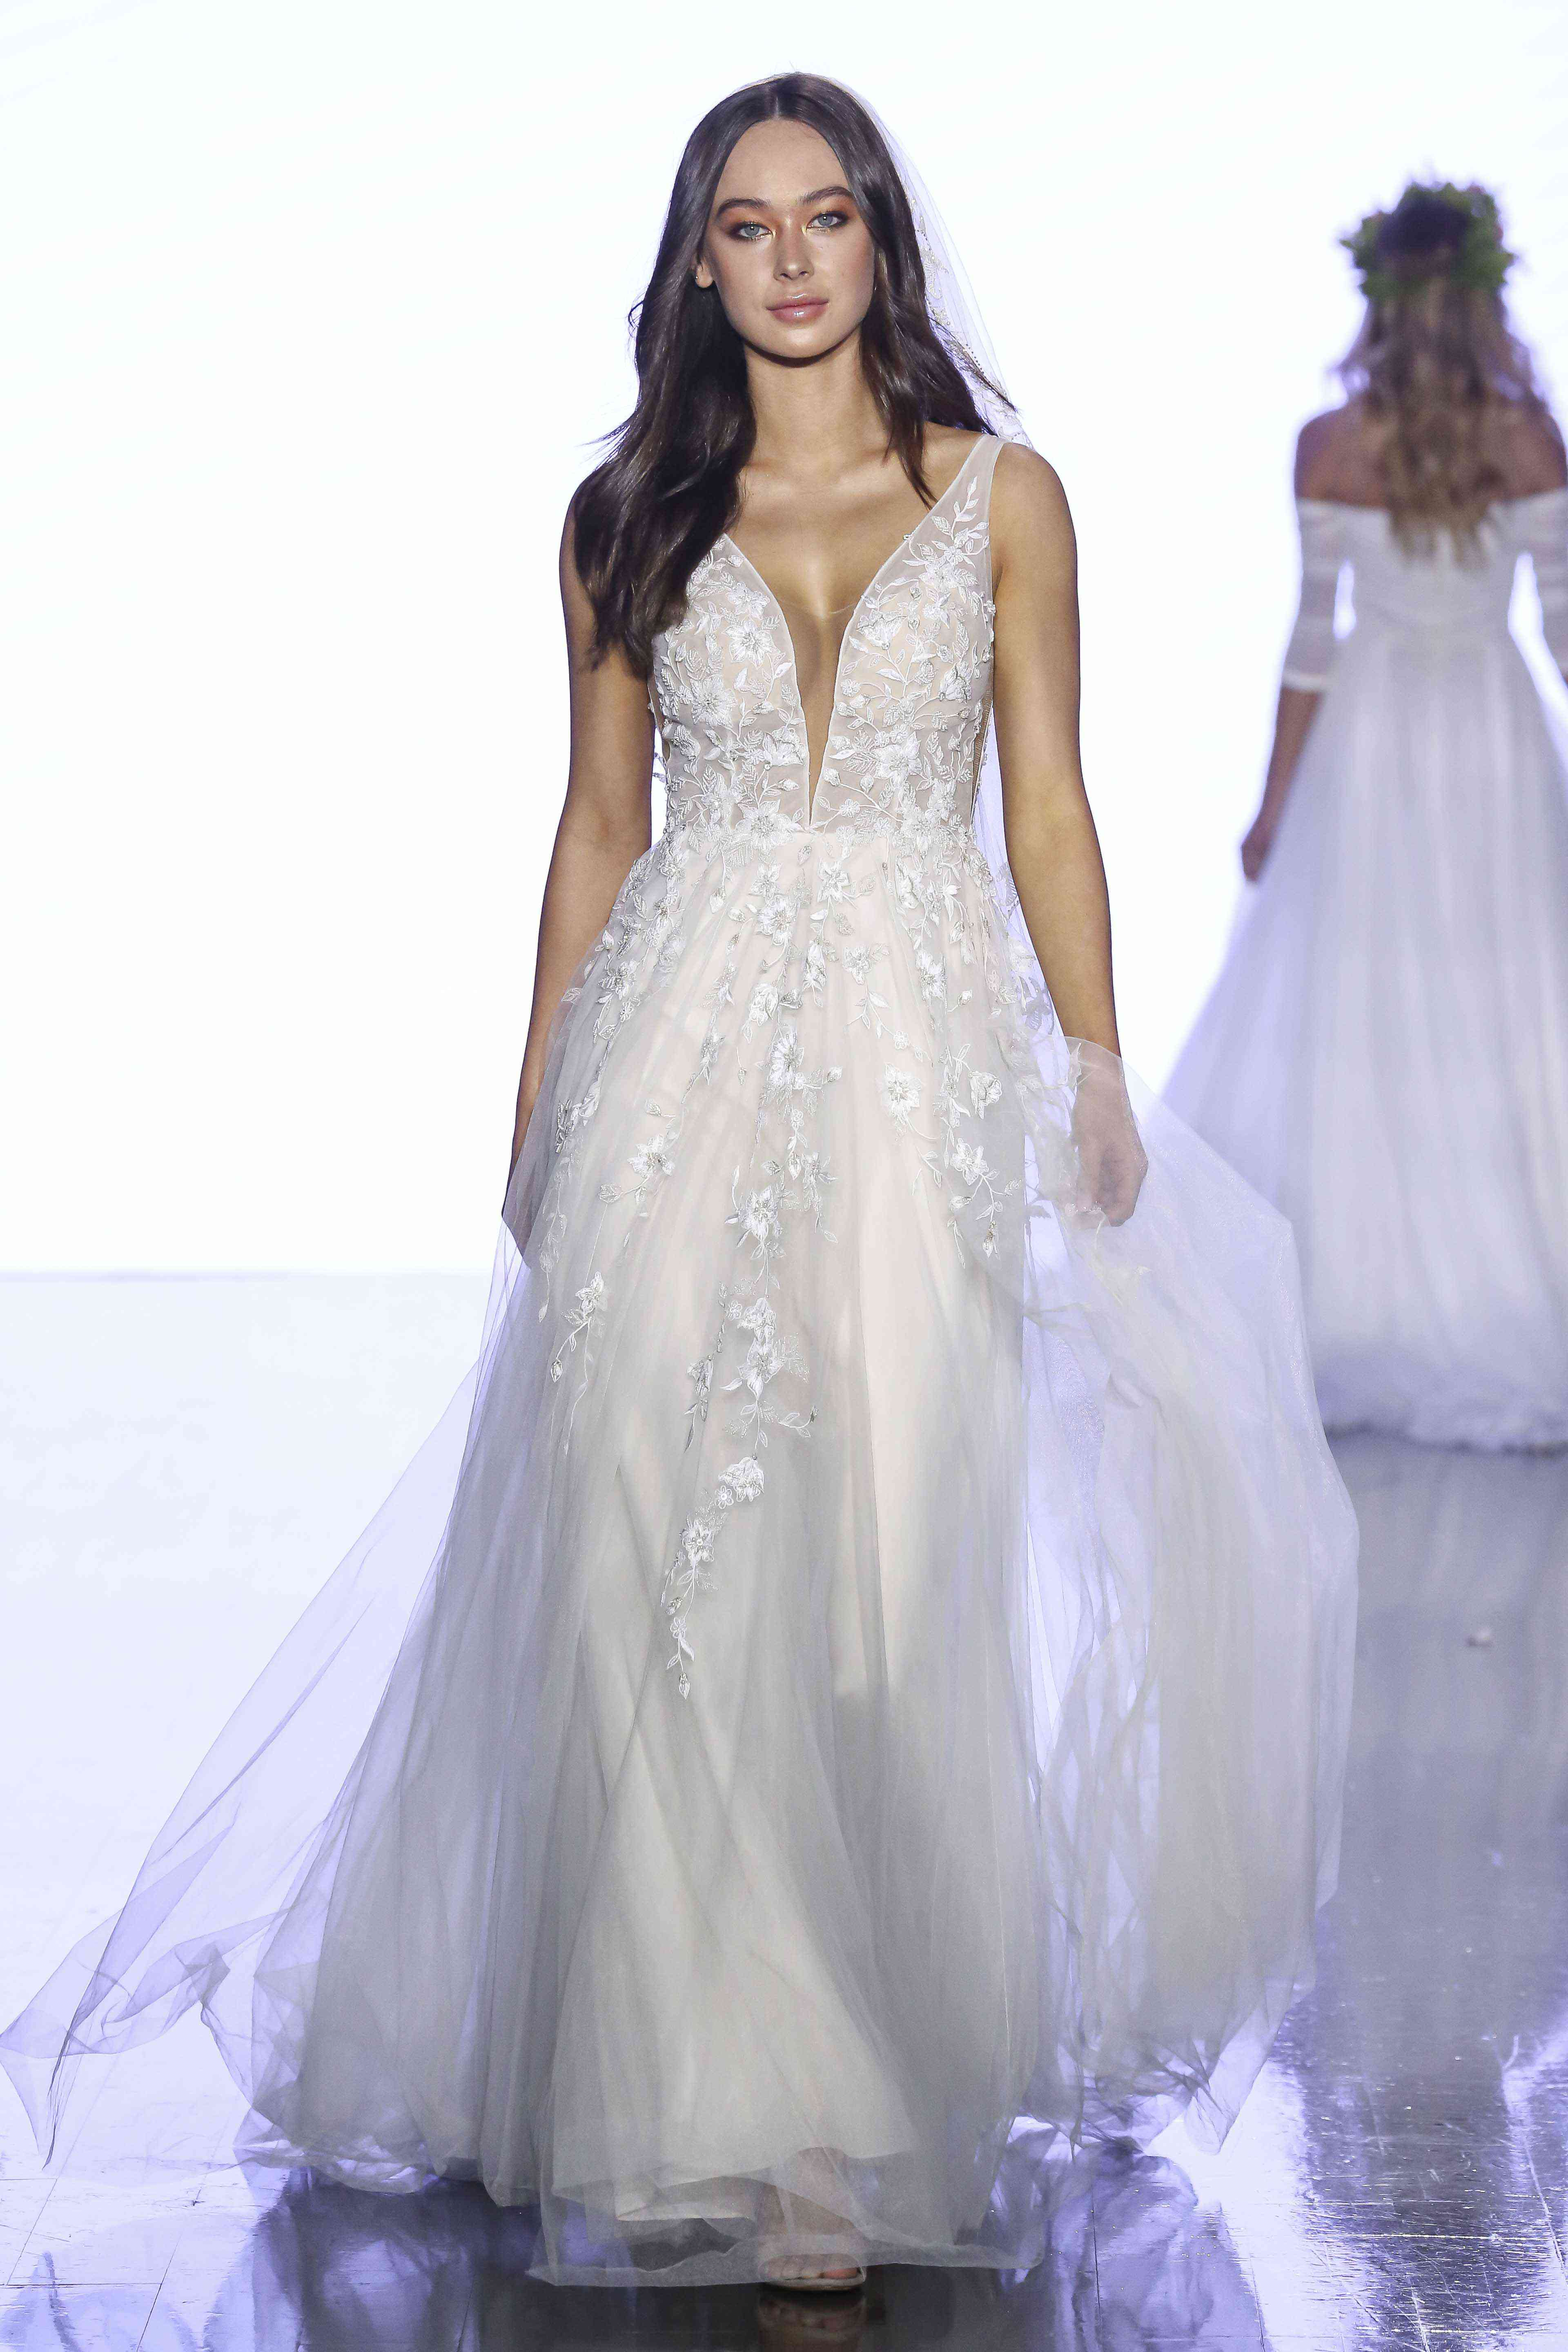 Model in tulle A-line gown with plunging neckline and floral embroidery